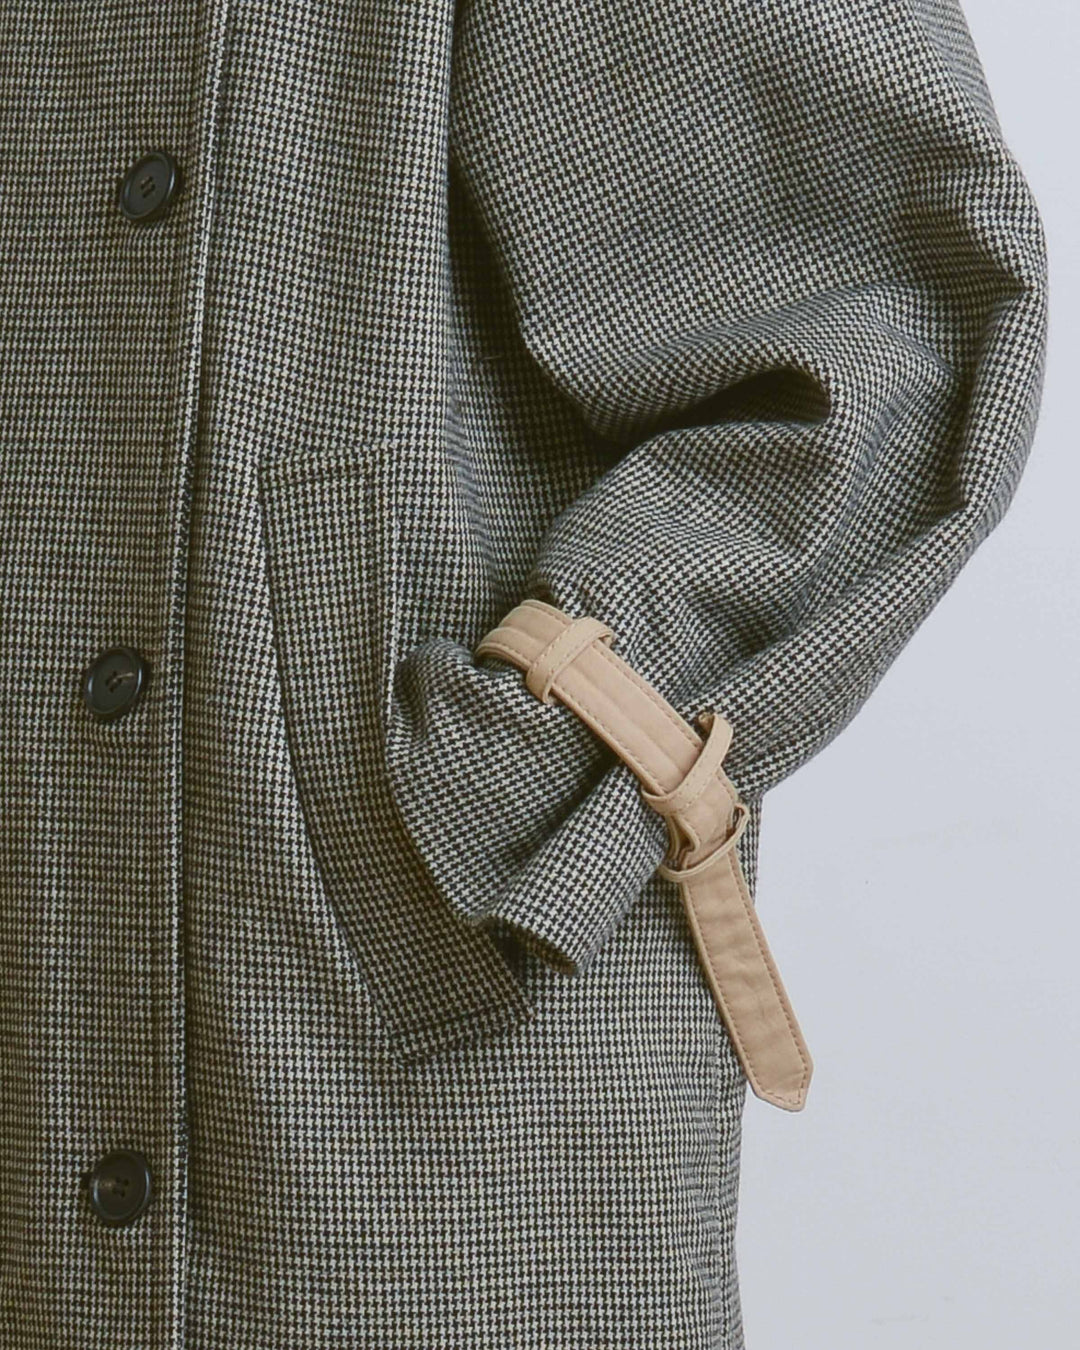 Billy Hunter Coat